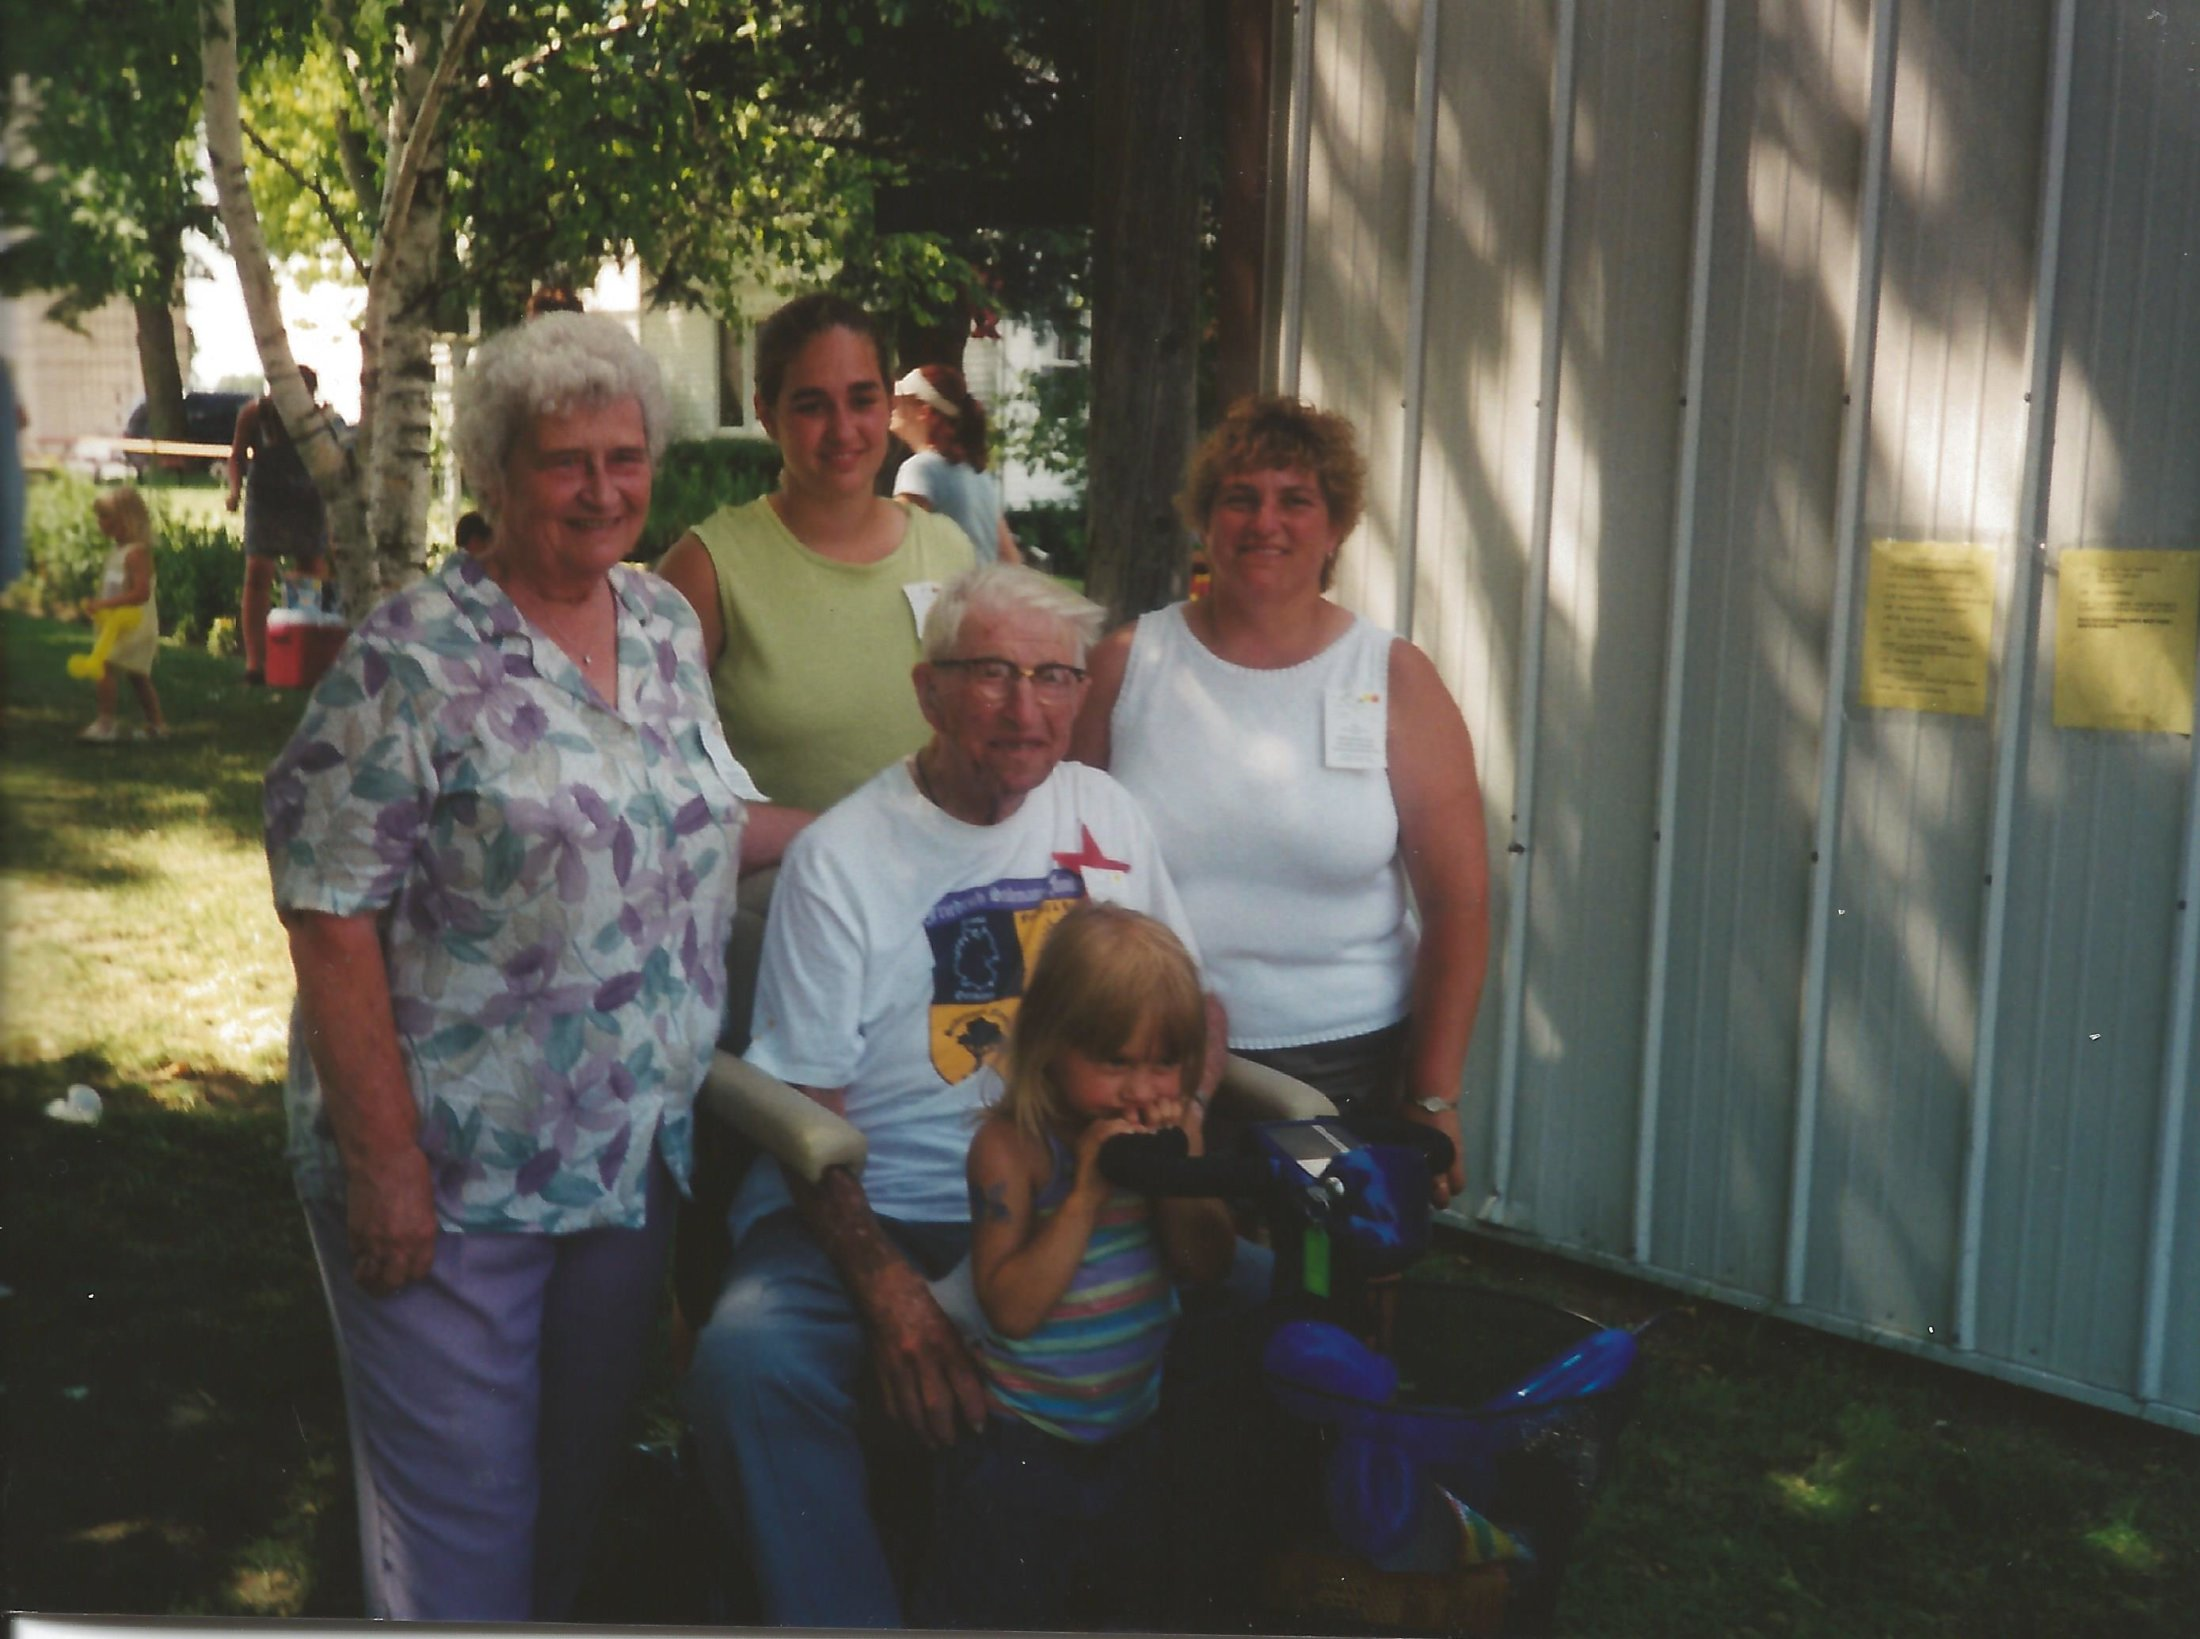 Five generation Picture - Marion, Yvonne, Cindy, Ray, and Taylor